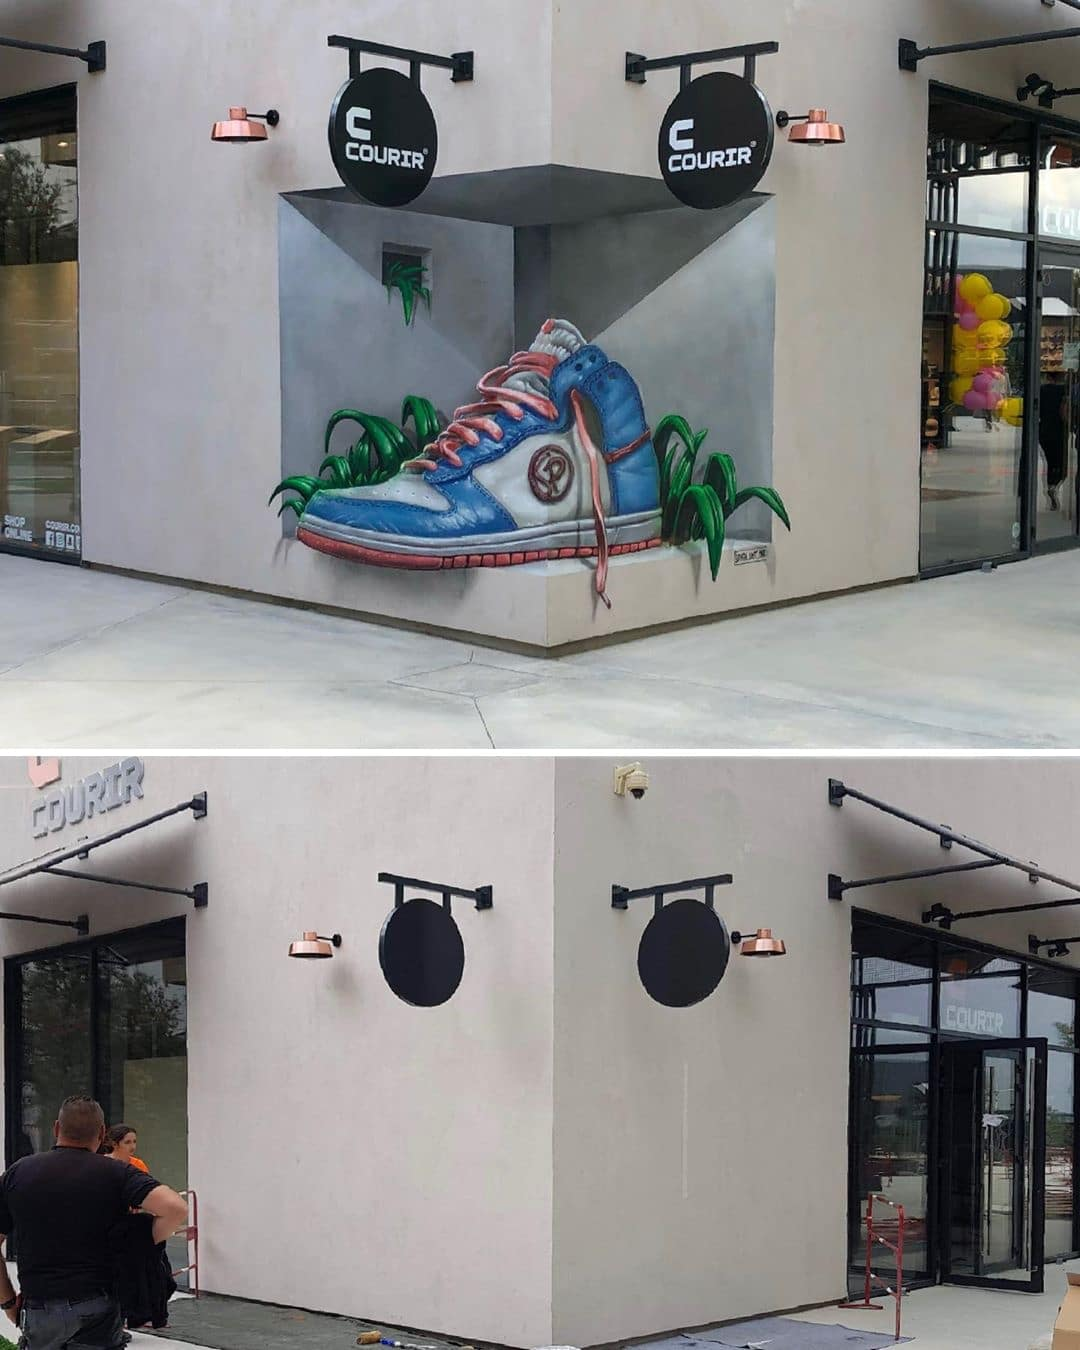 Optical Illusion of a Sneaker Painted on a Street Corner